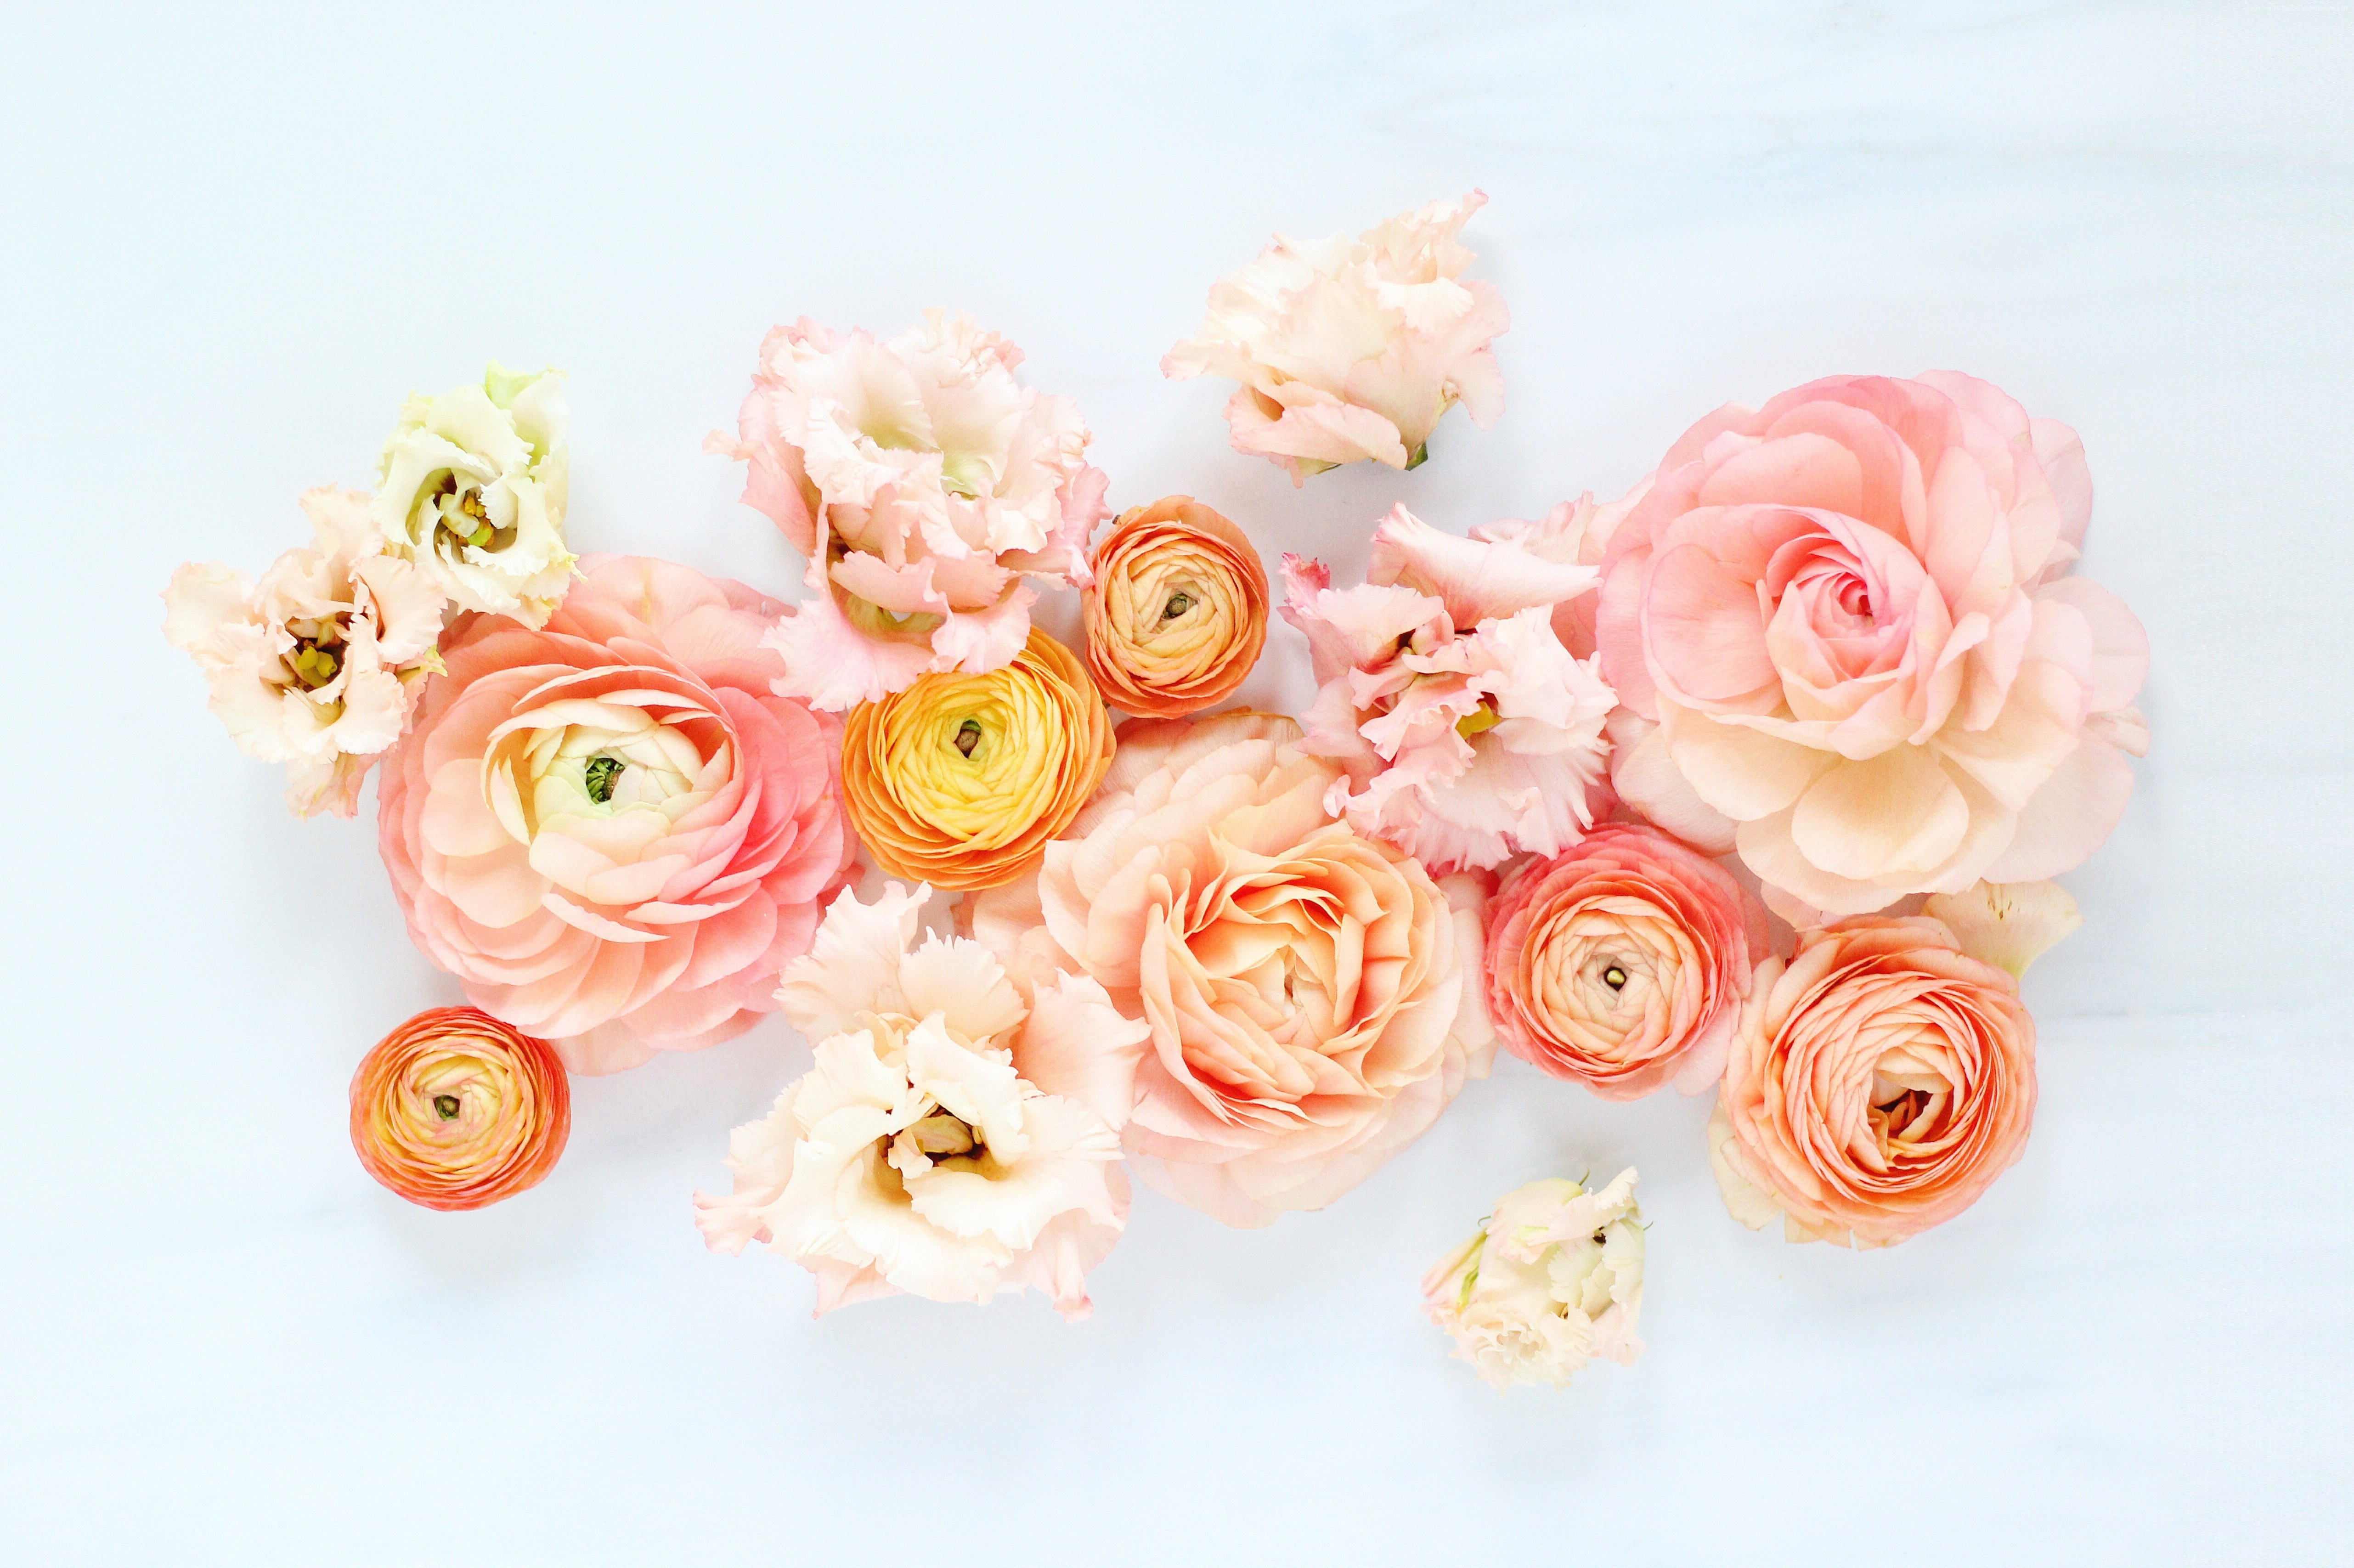 Click The Wallpaper To View Full Size - Justine Celina Digital Blooms , HD Wallpaper & Backgrounds